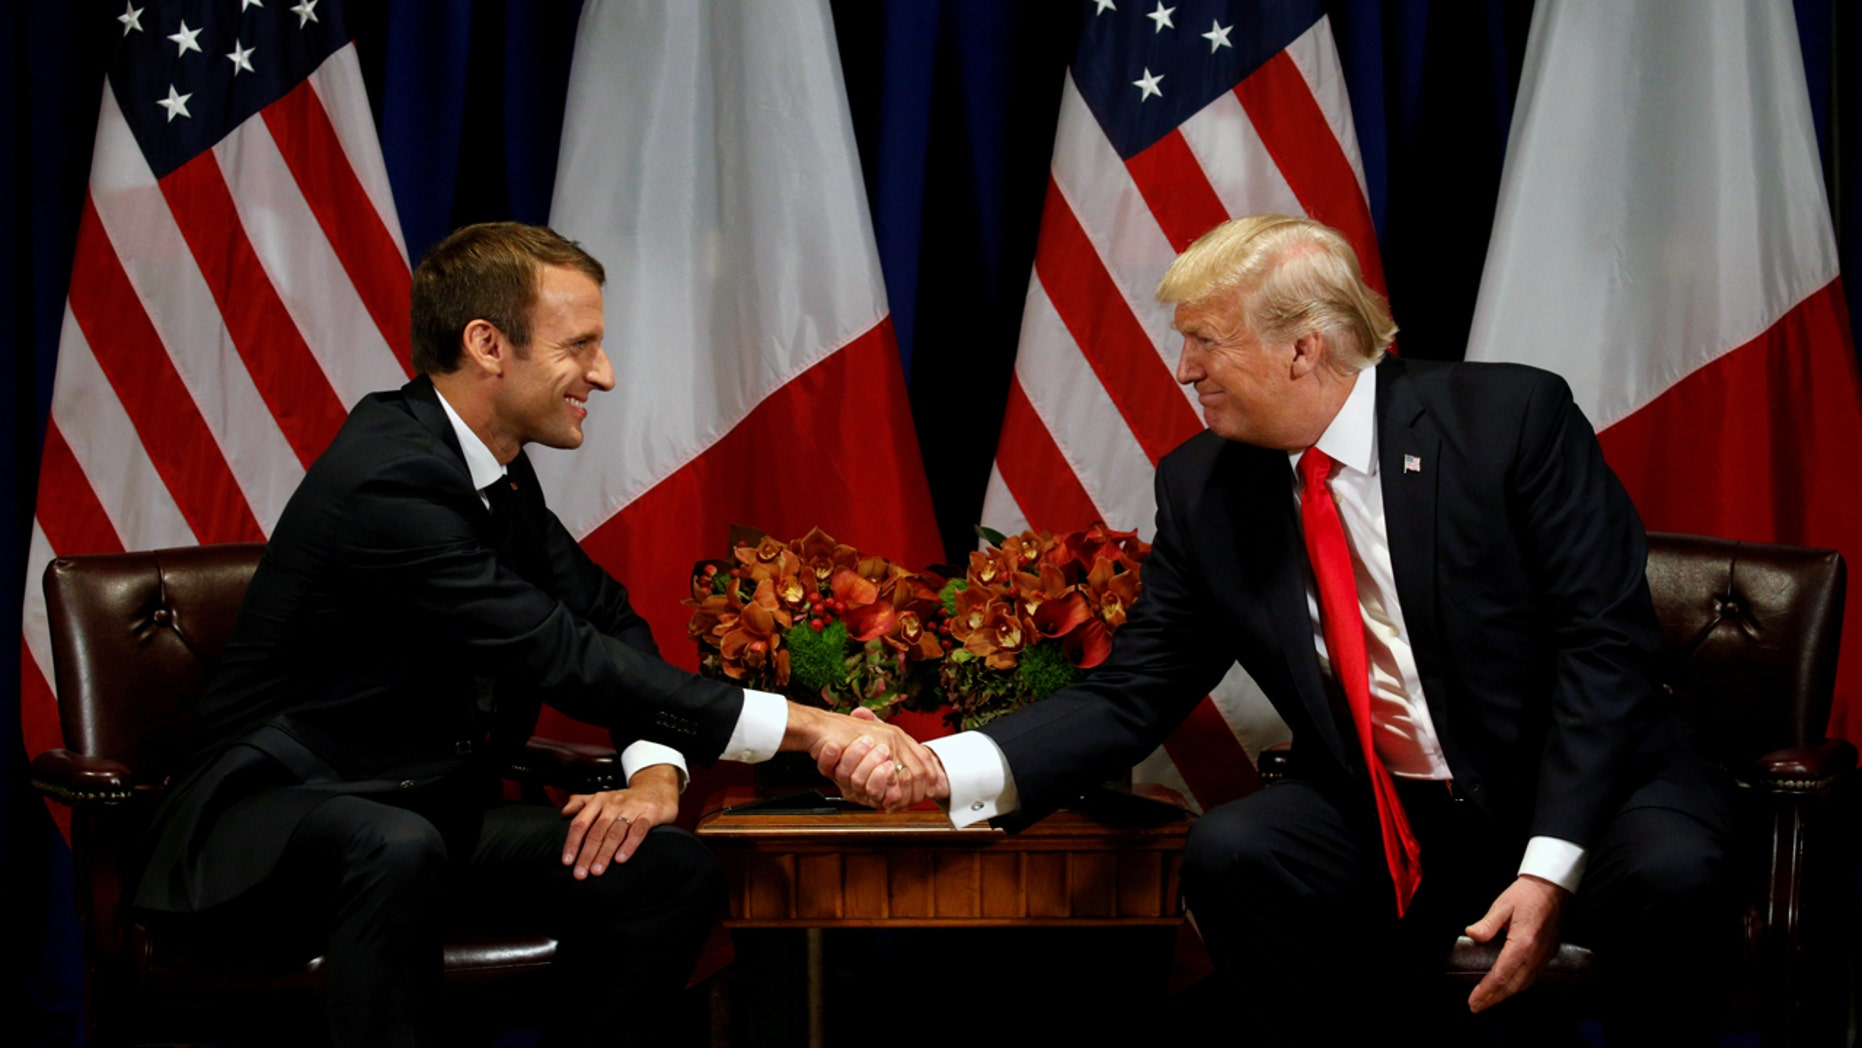 Trump and French President Emmanuel Macron shake hands during a meeting on the sidelines of the United Nations General Assembly in New York this past September.